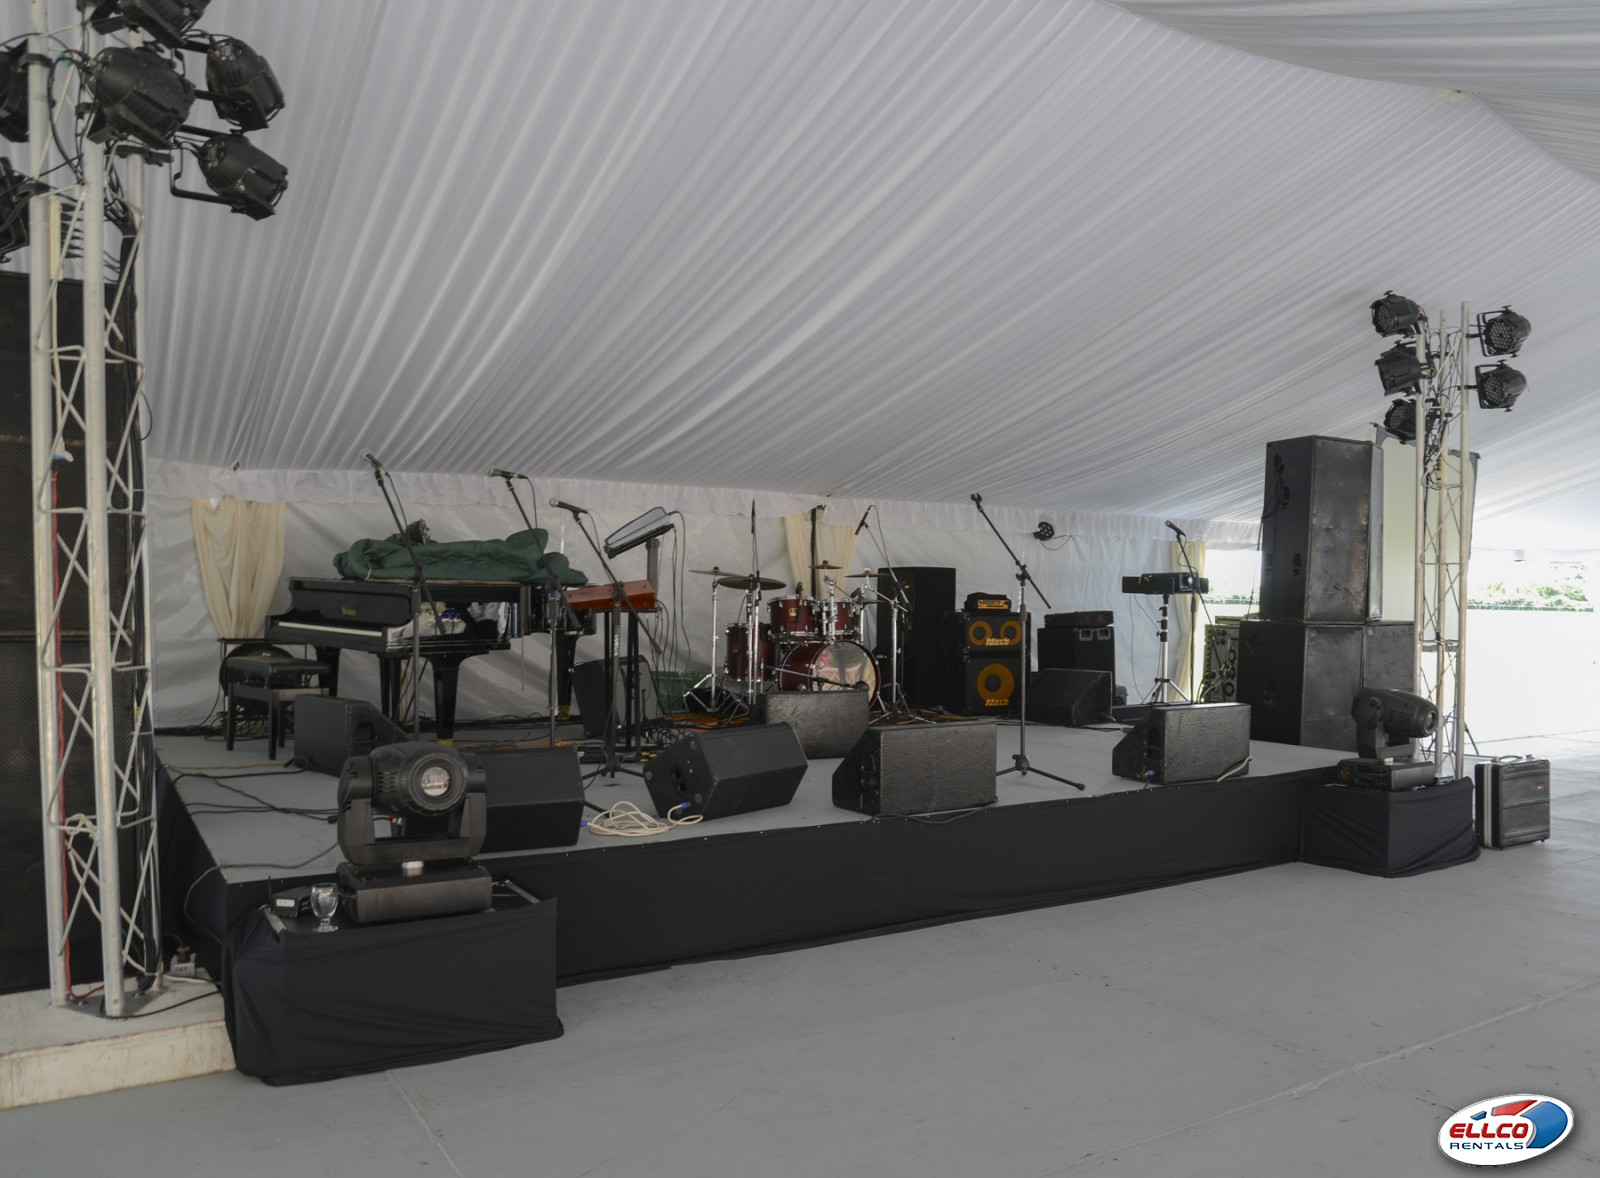 Staging Built To Order In At Ellco Rentals Event